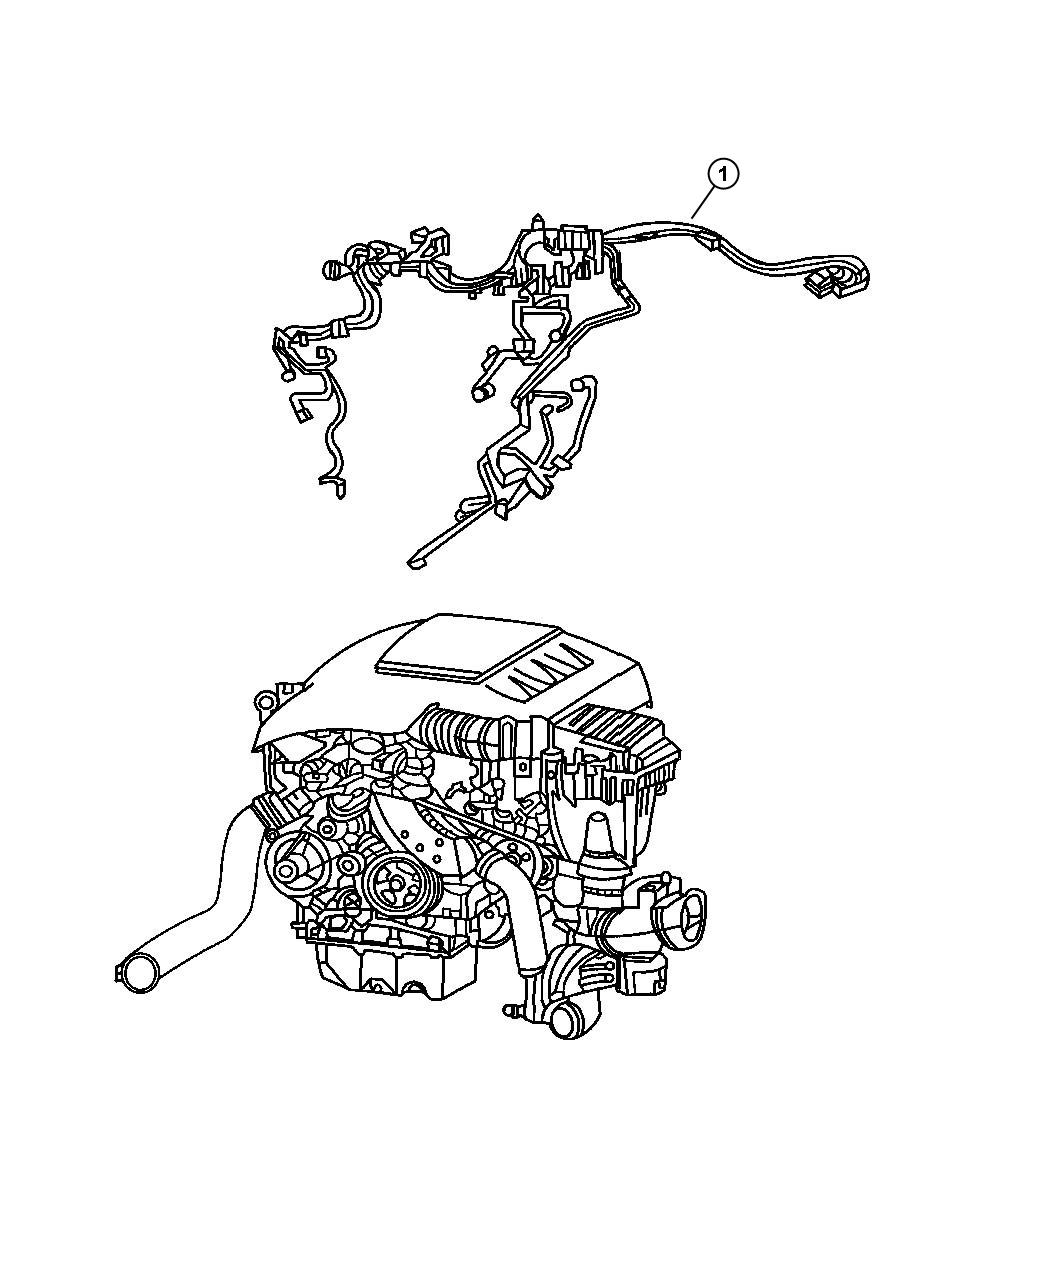 Jeep Wrangler Ignition Wiring Schematic